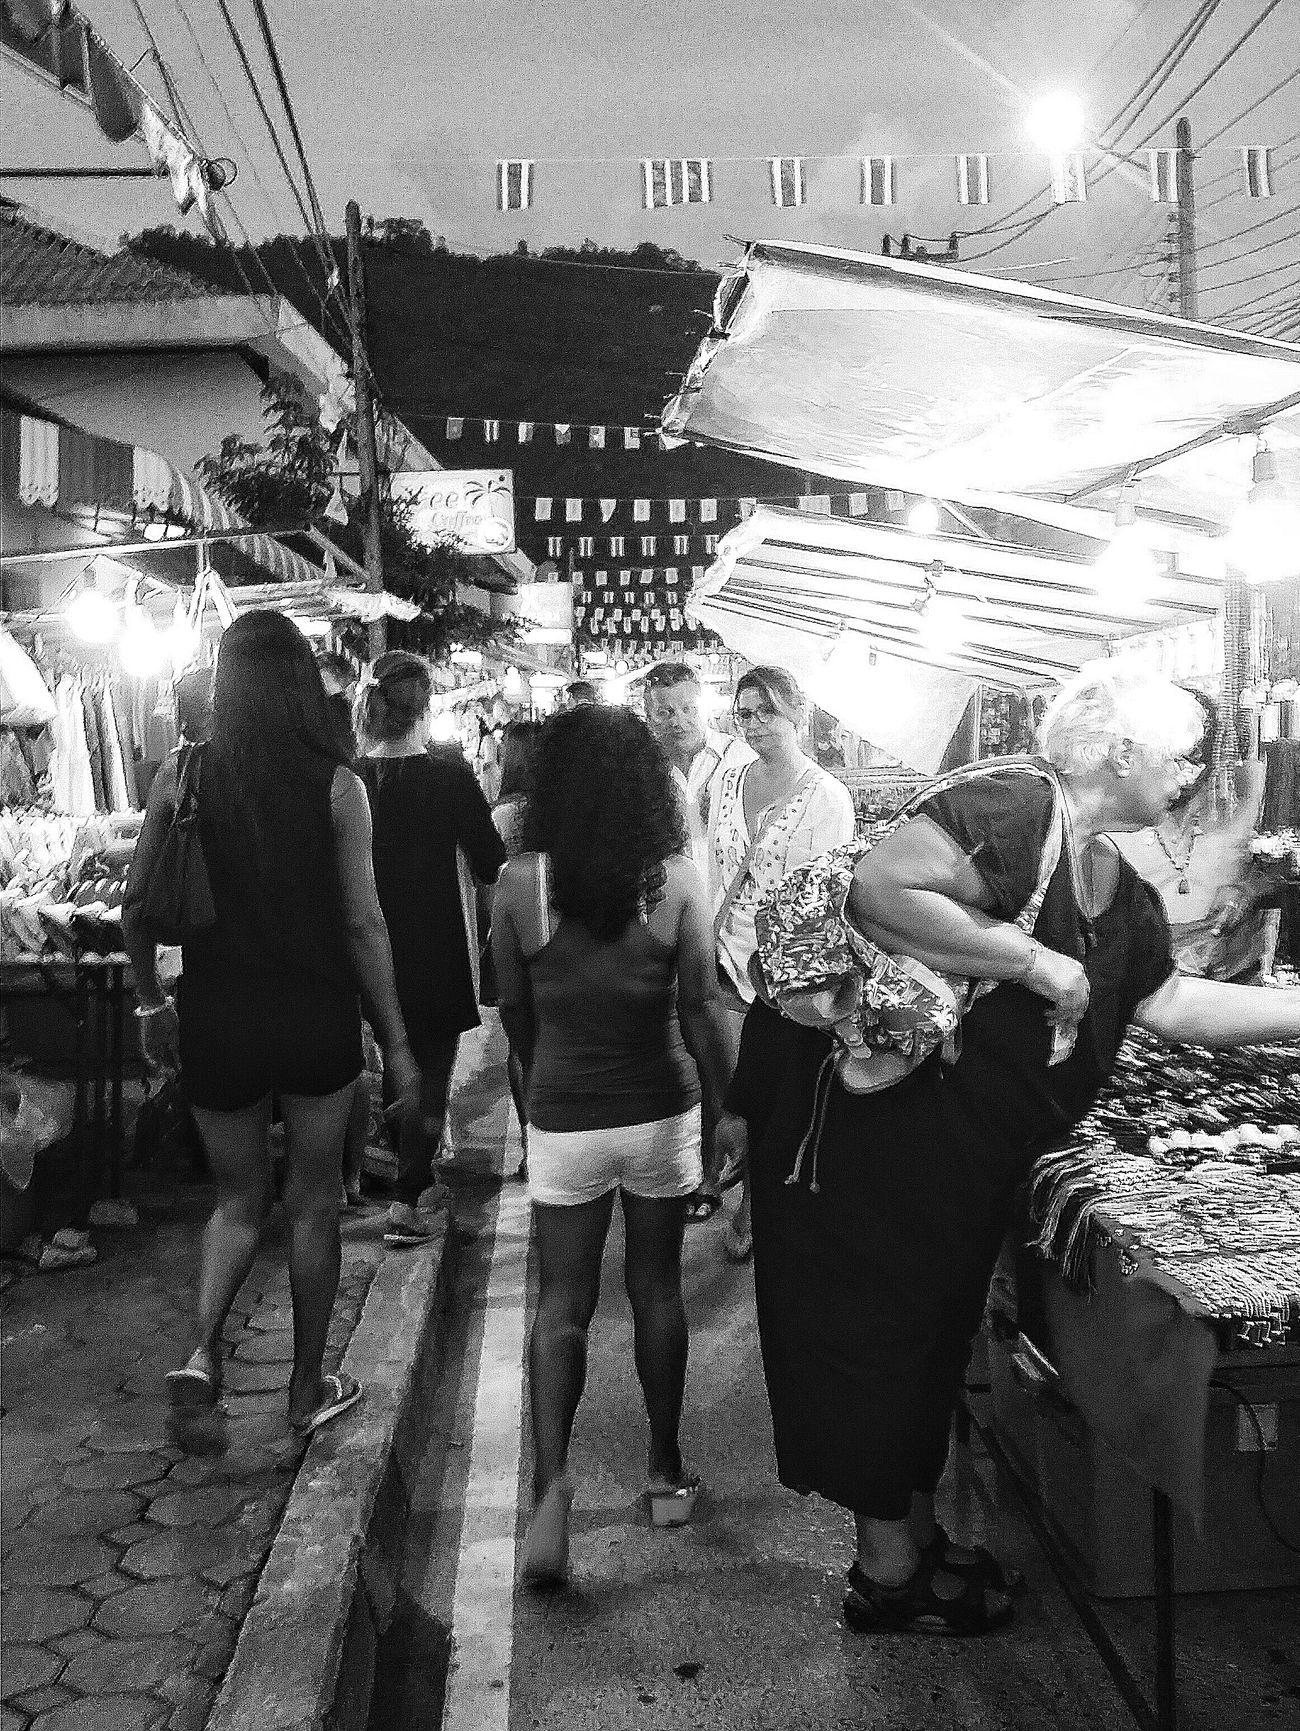 Lamai Night Market Crowds Shopping Stalls Koh Samui Thailand Travelphotography Streetphotography Night Bnw Bnw_streetphotography Bnw_captures Bnw_world Bnw_travel Bnw_kohsamui Bnw_thailand